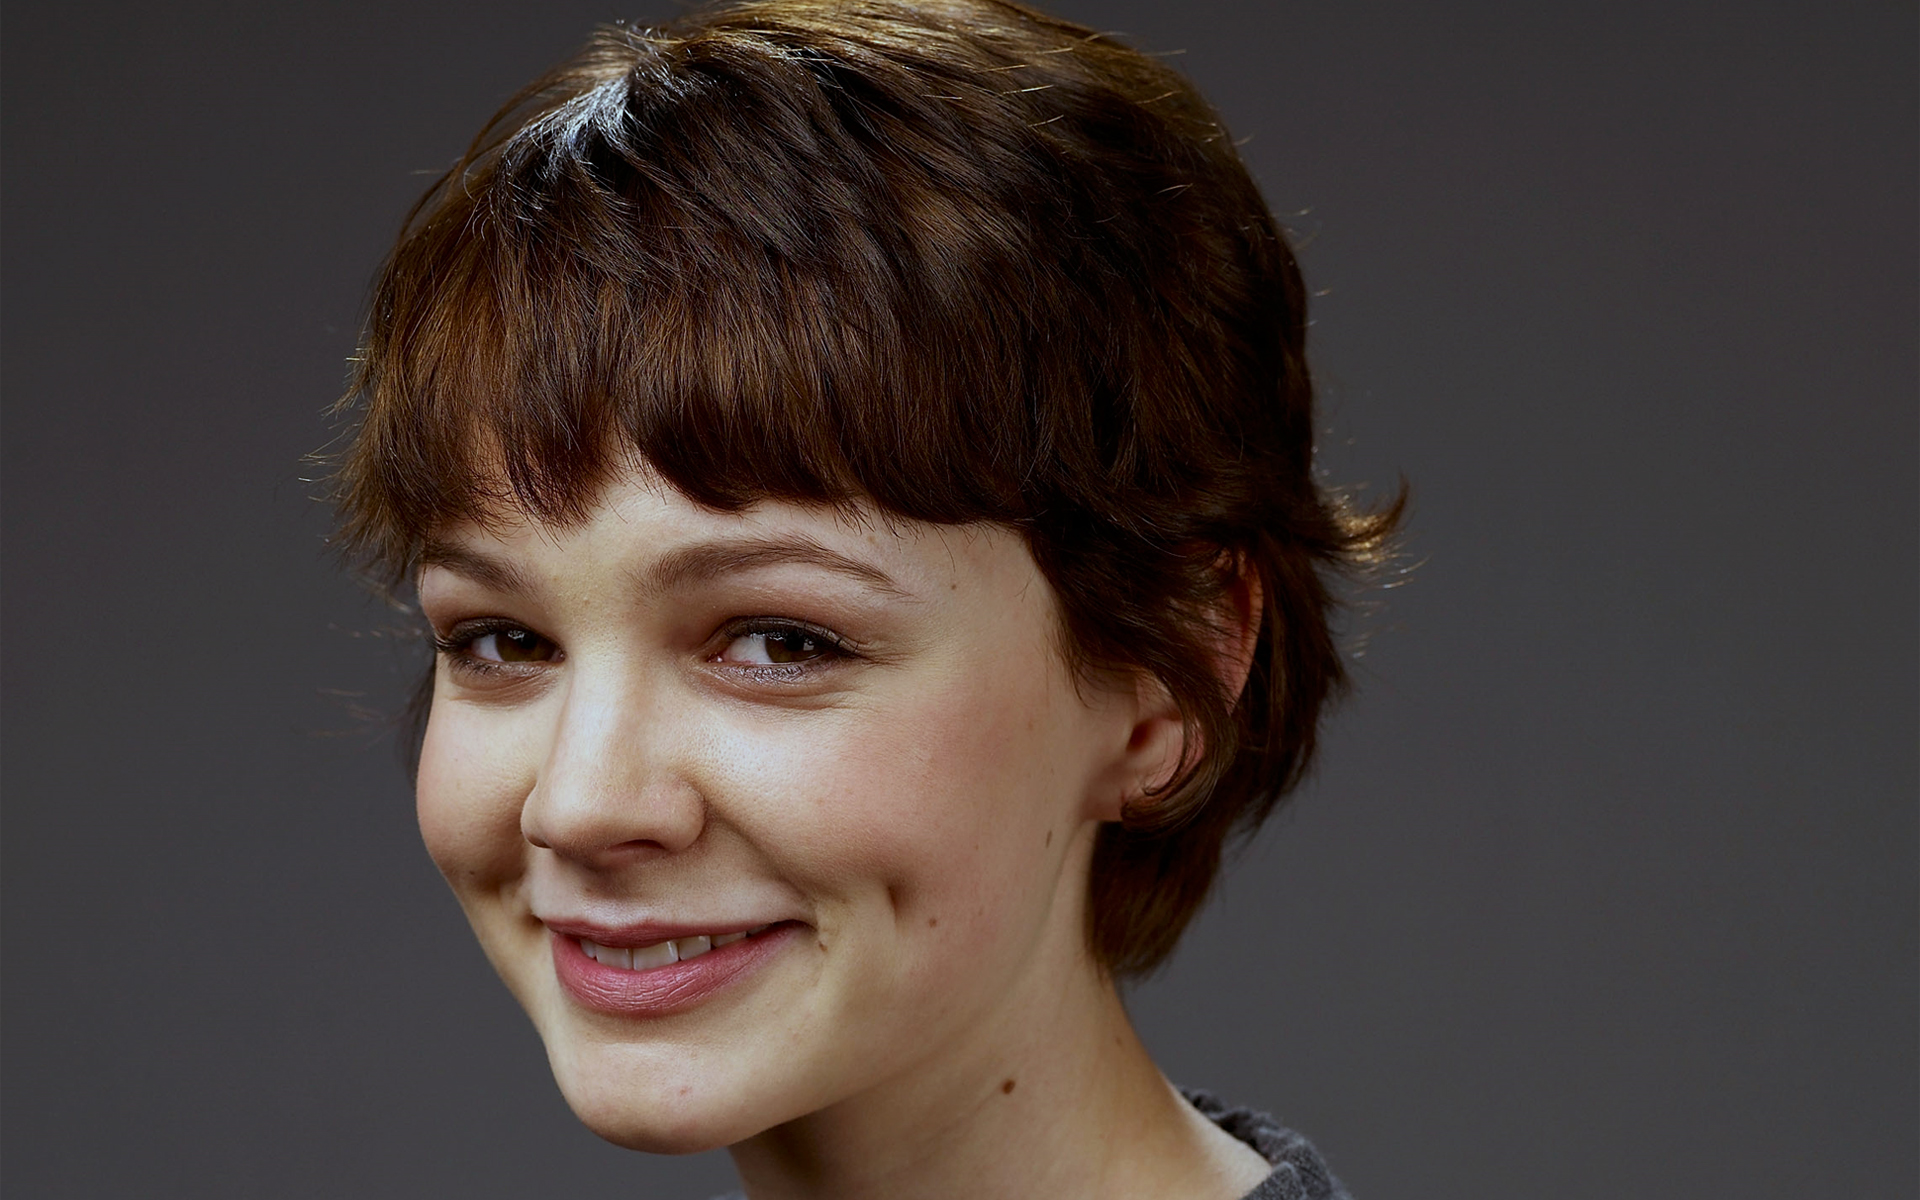 CAREY MULLIGAN TO PLAY WOLVERINE